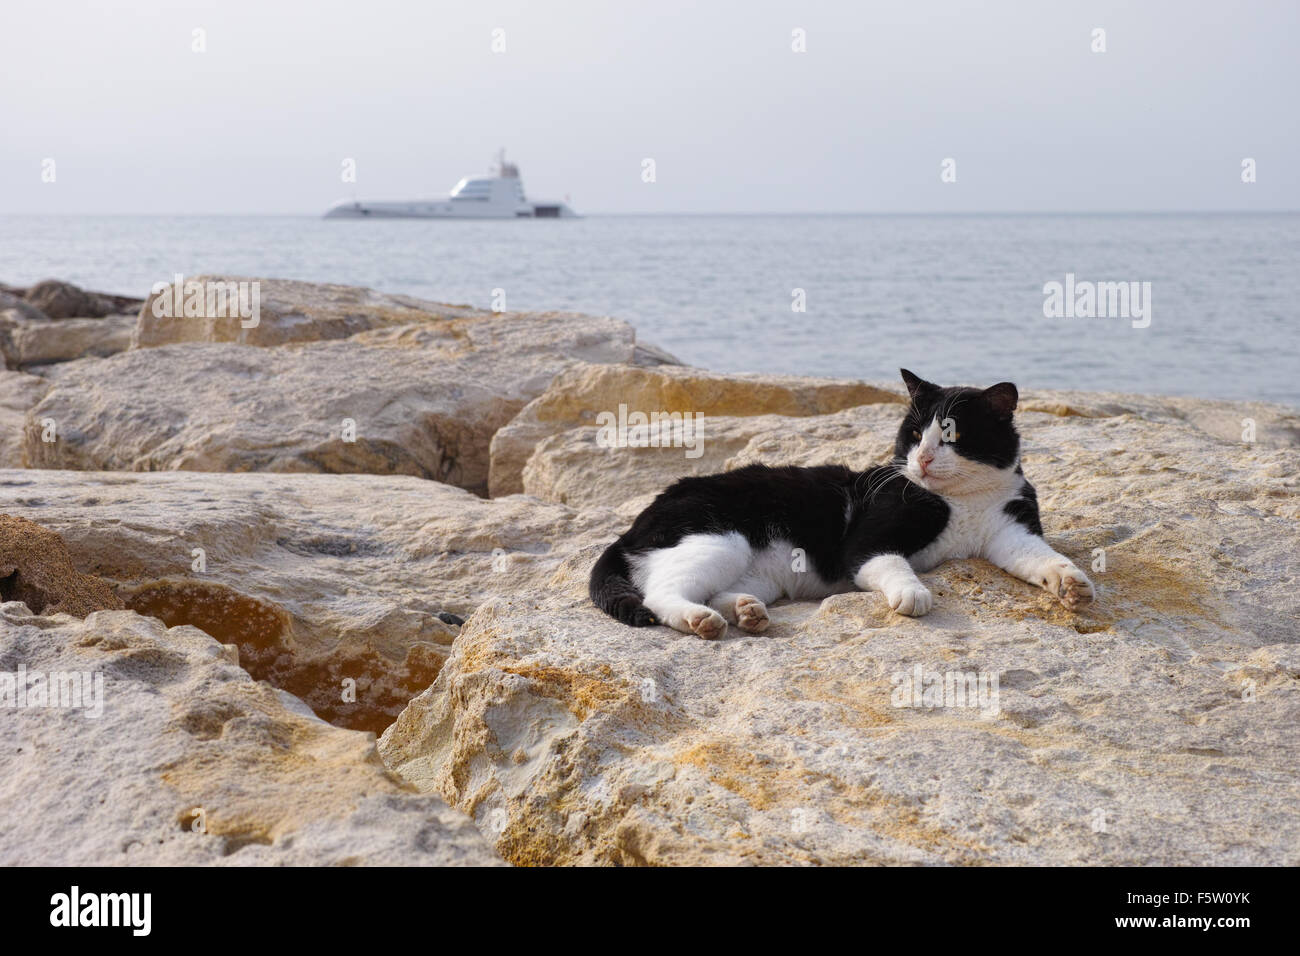 Cat laying on rocks in background of sea and yacht. - Stock Image